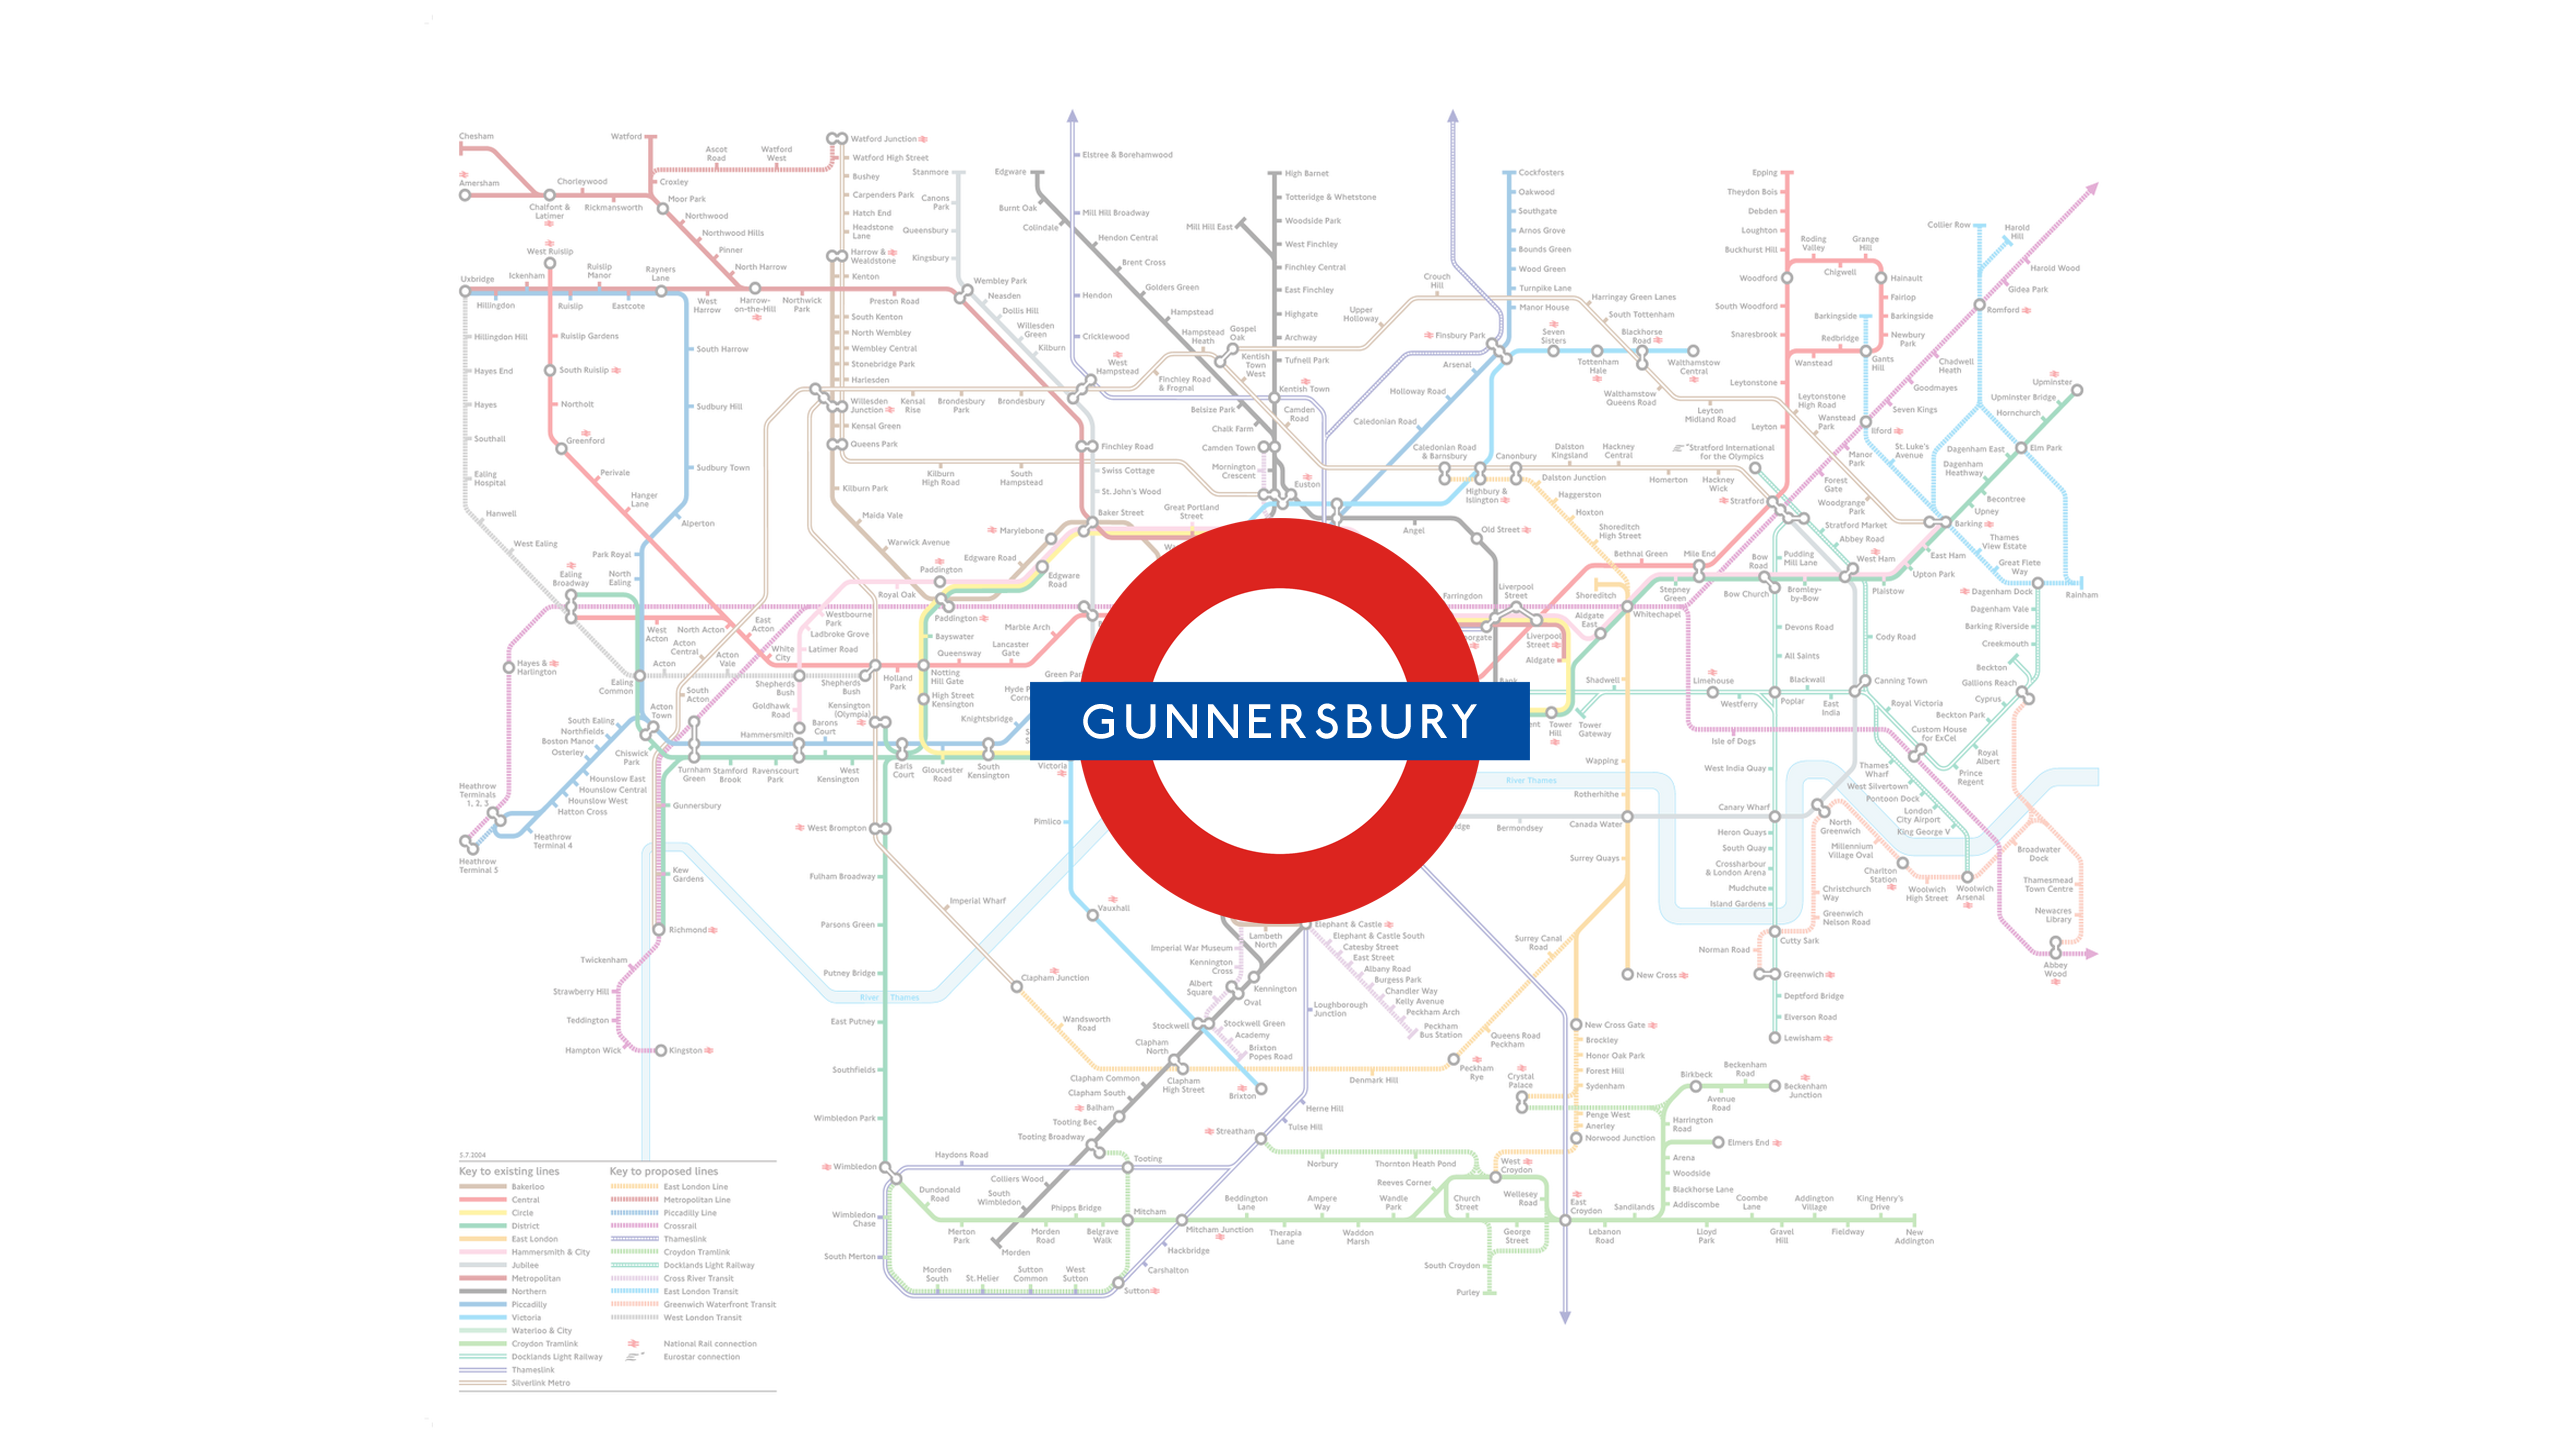 Gunnersbury (Map)